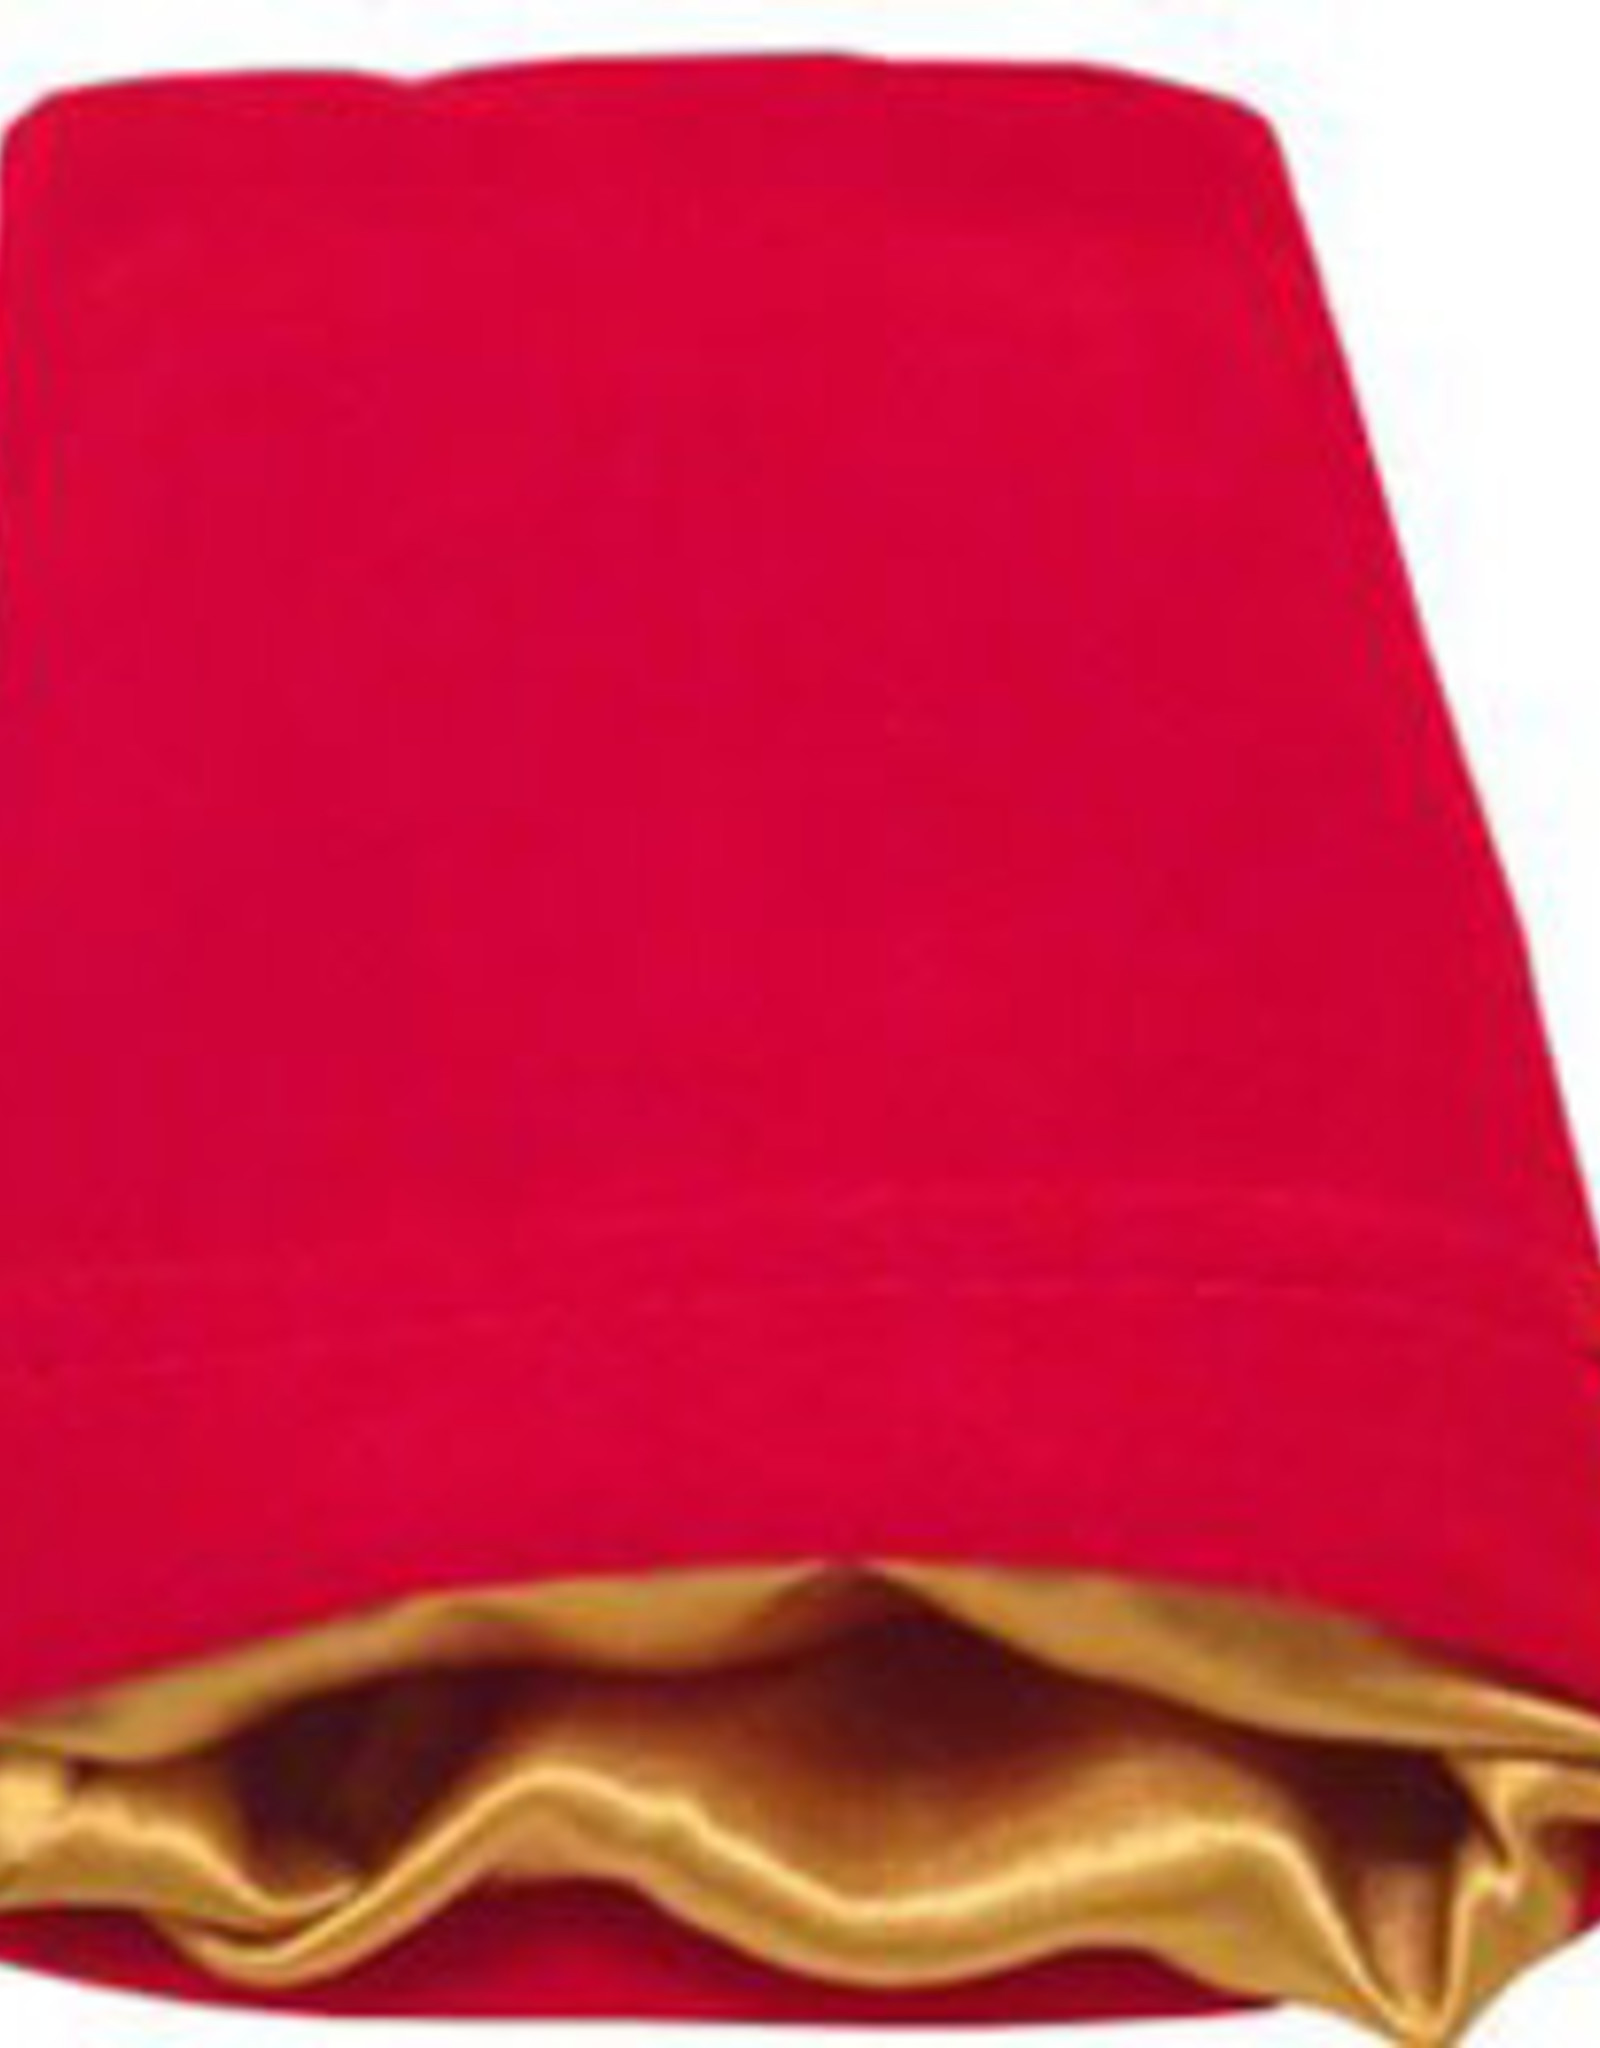 Metallic Dice Games 4in x 6in SMALL Red Velvet Dice Bag with Gold Satin Lining